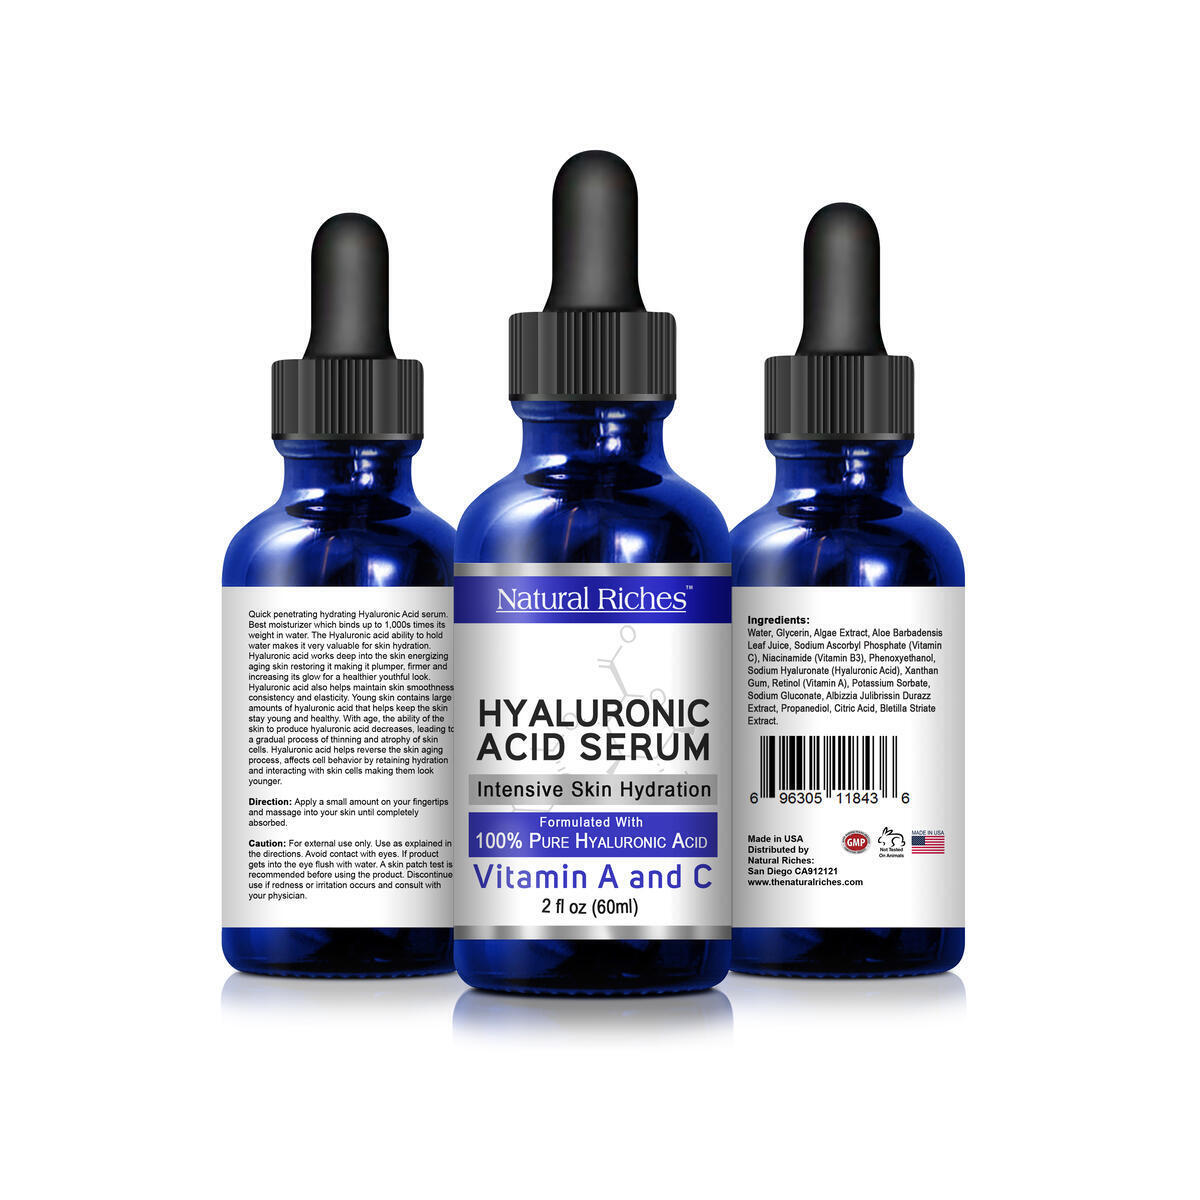 Natural Riches Hyaluronic Acid Serum Anti-Aging Facial Serum Pure Hydration Natural Moisturizer with Vitamin C Vitamin A Skin Care Reduce Wrinkles Dark Spots Brightening Face Glowing Skin